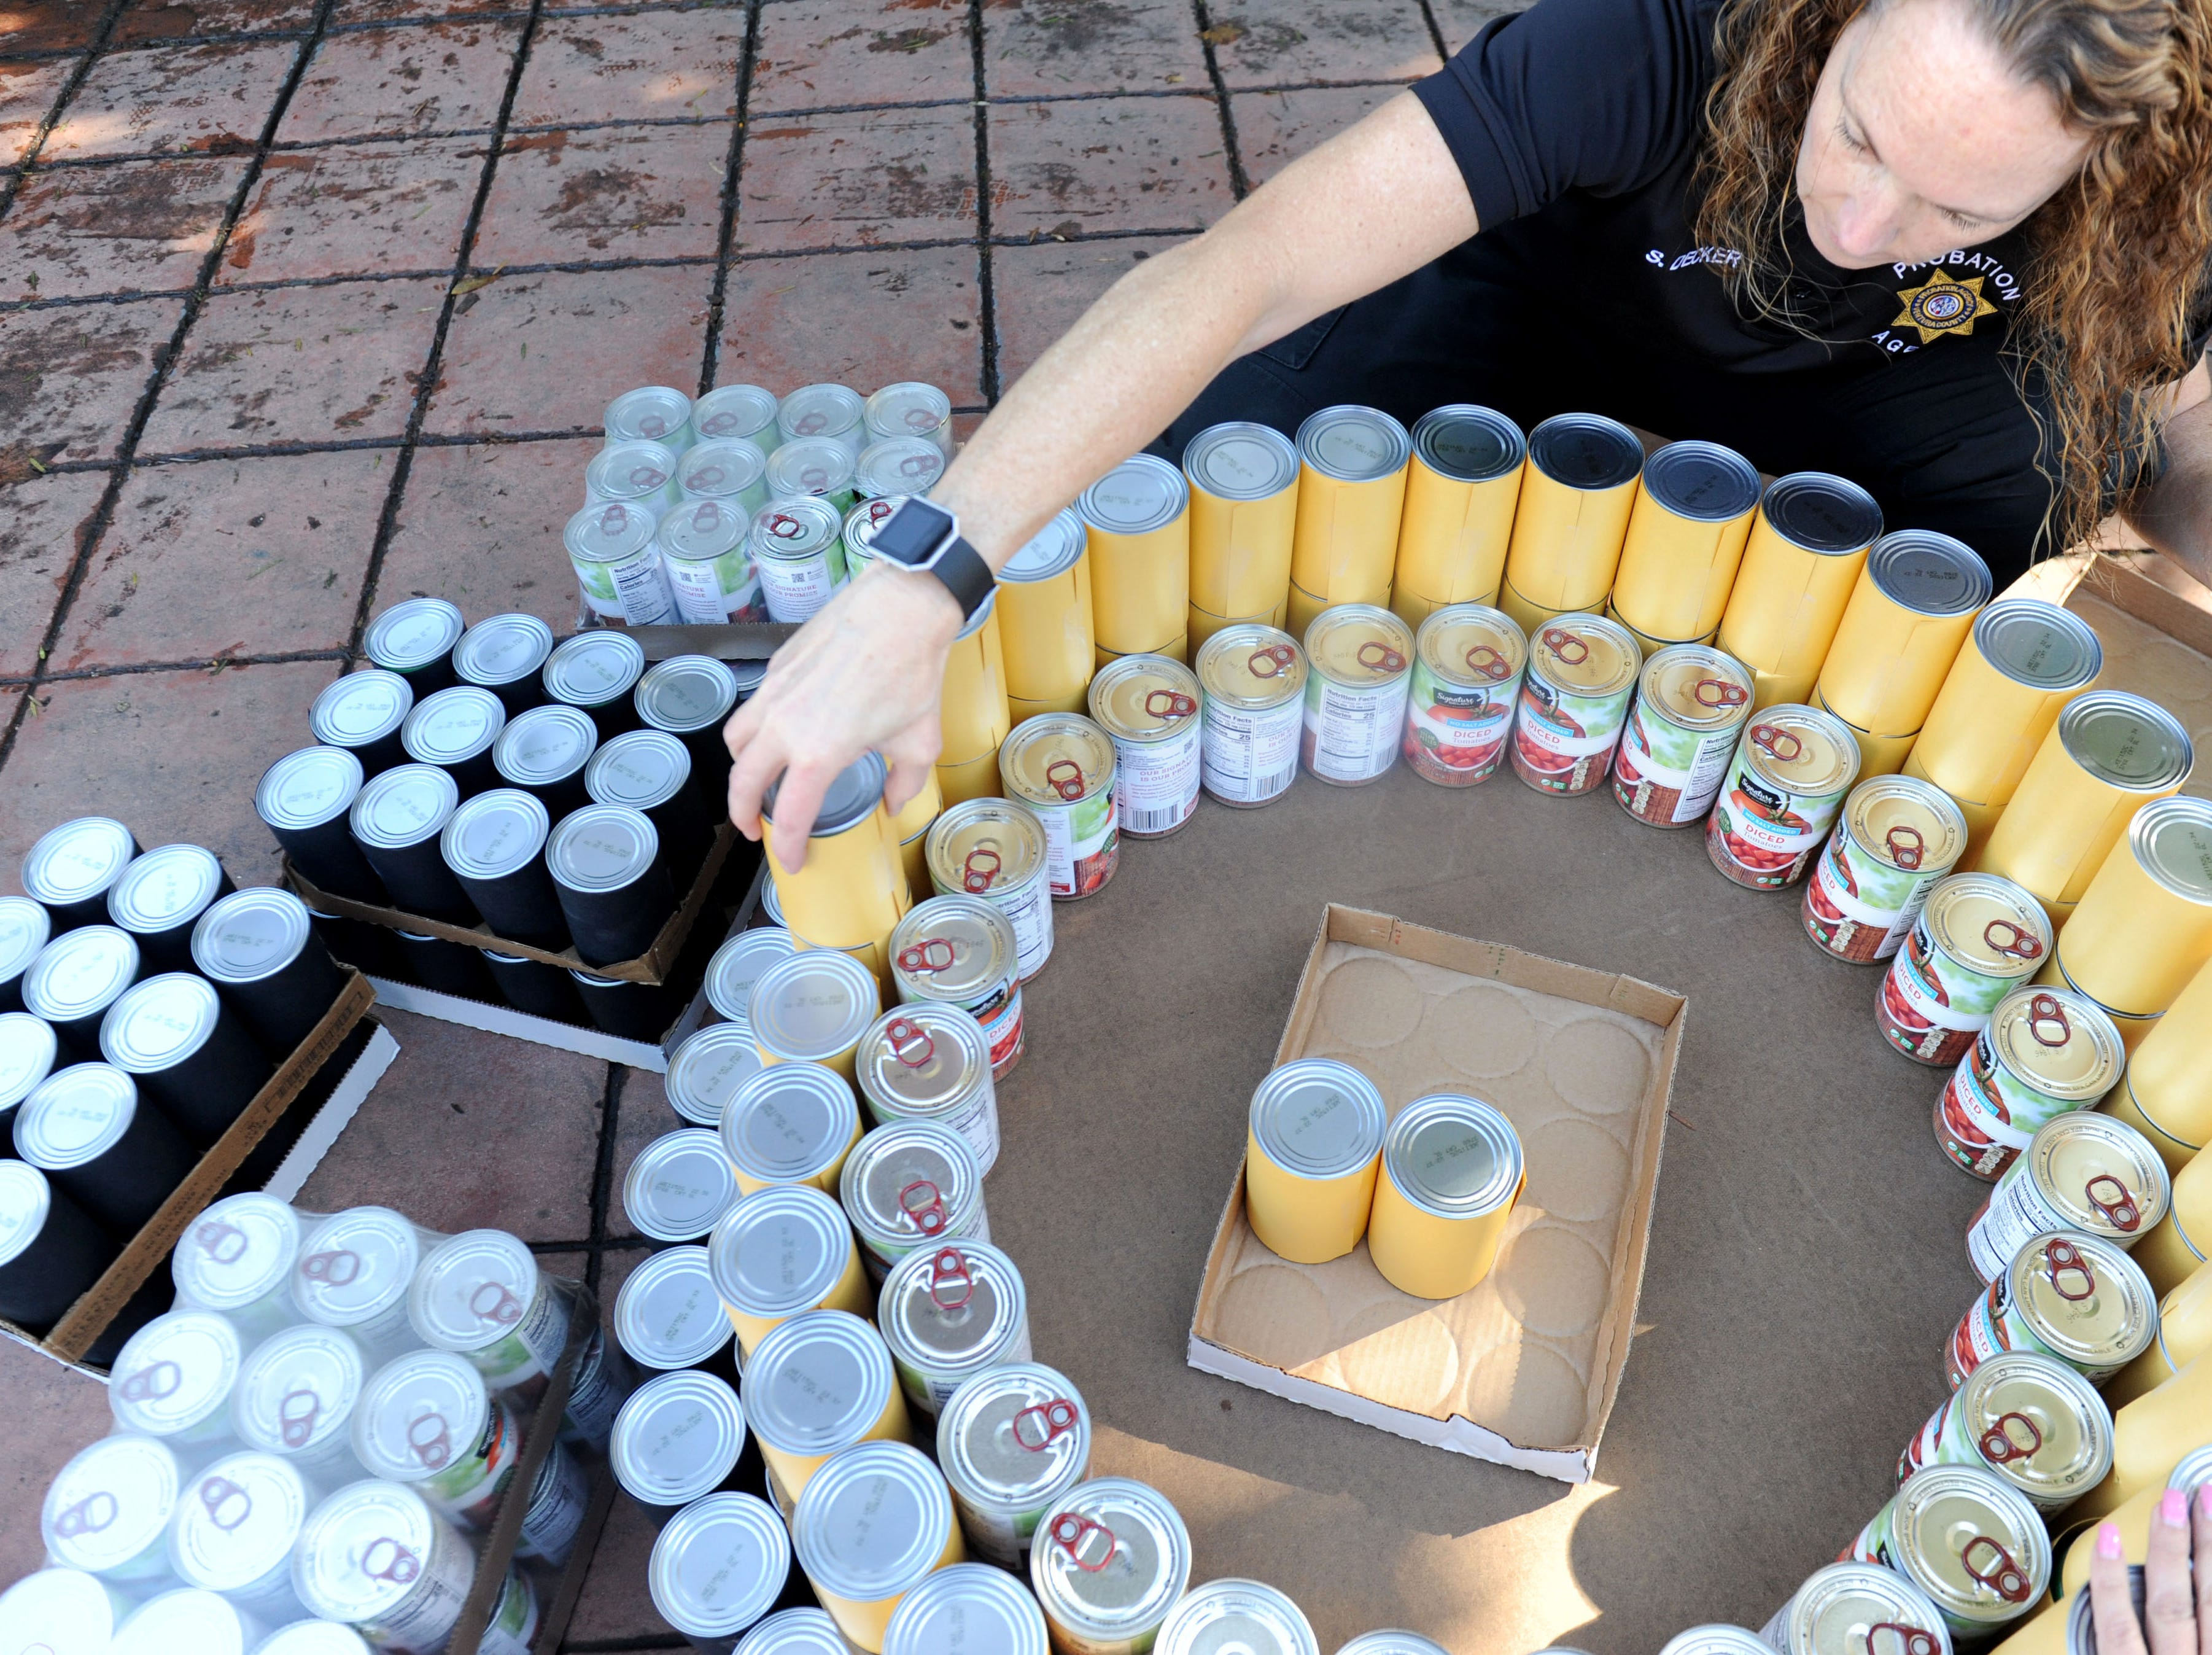 Shana Decker, senior deputy probation officer for the County of Ventura helps build a can tree at FOOD Share's annual CAN-tree food drive in downtown Ventura at Figueroa Plaza.